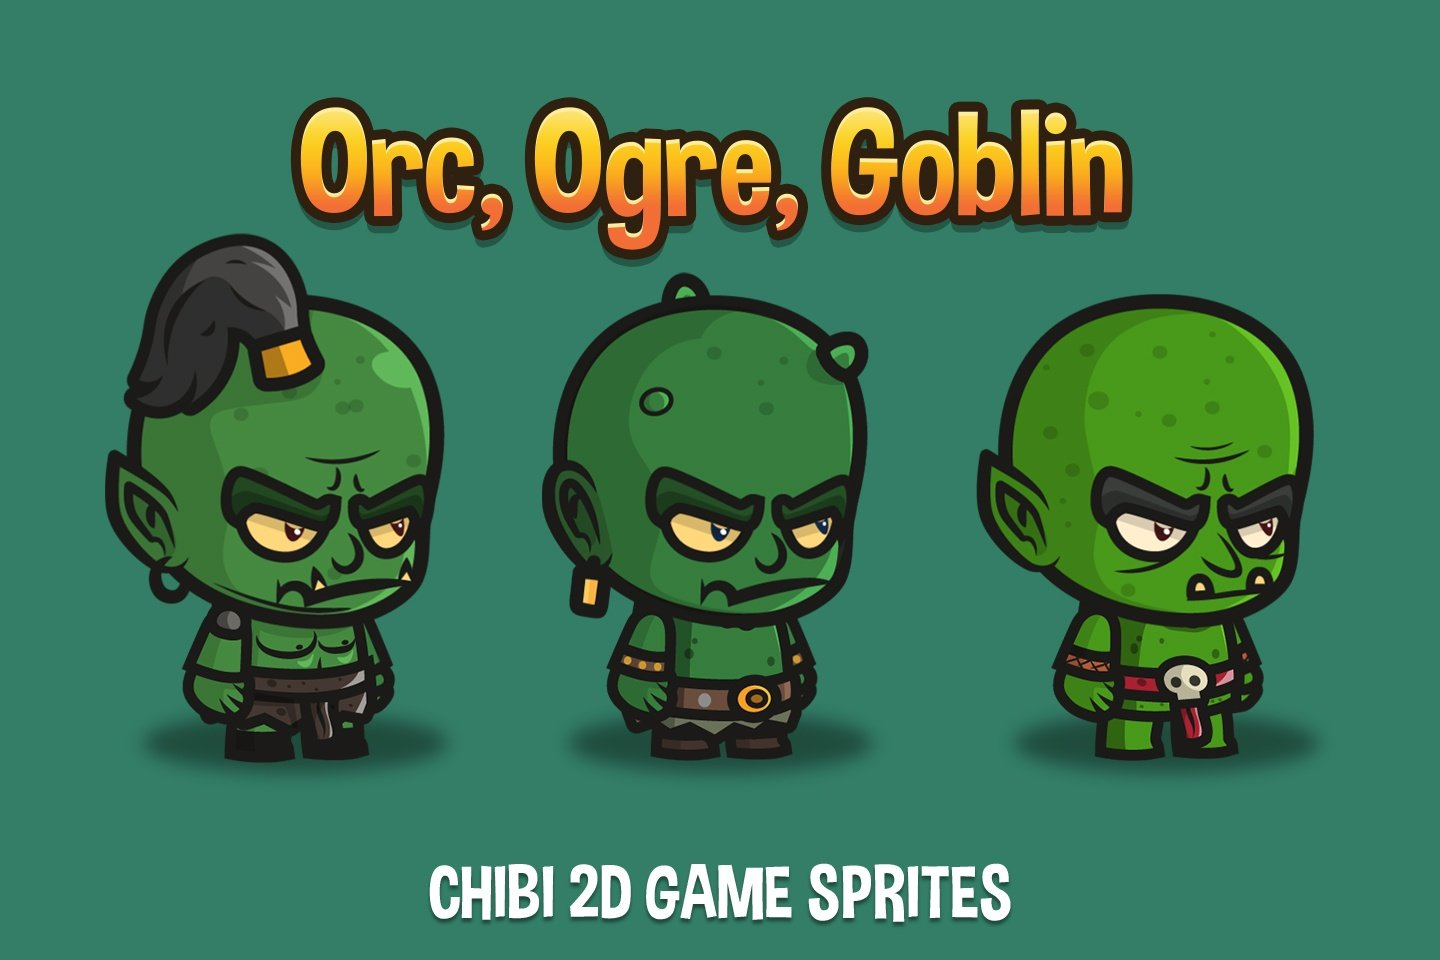 Free Orc, Ogre and Goblin Chibi 2D Game Sprites